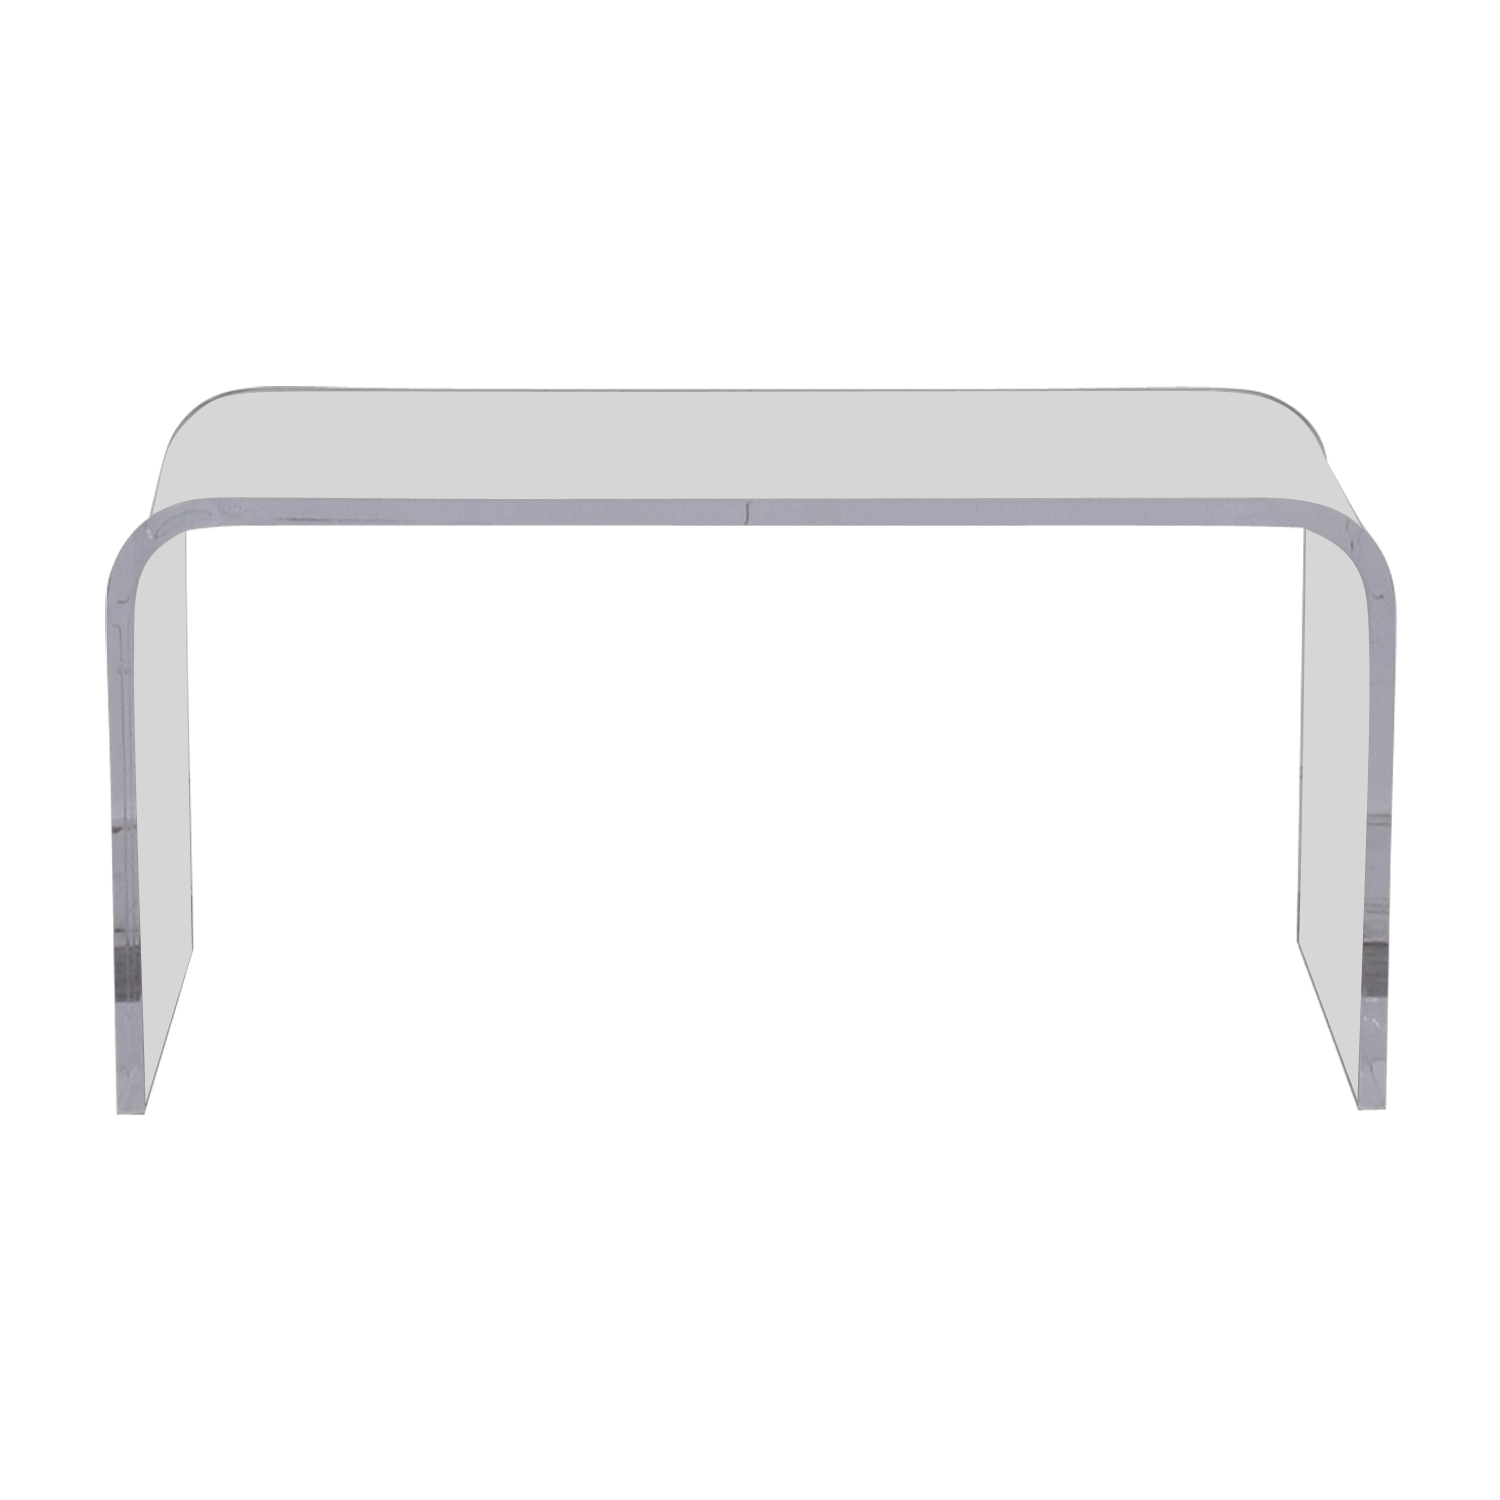 Acrylic Coffee Table price